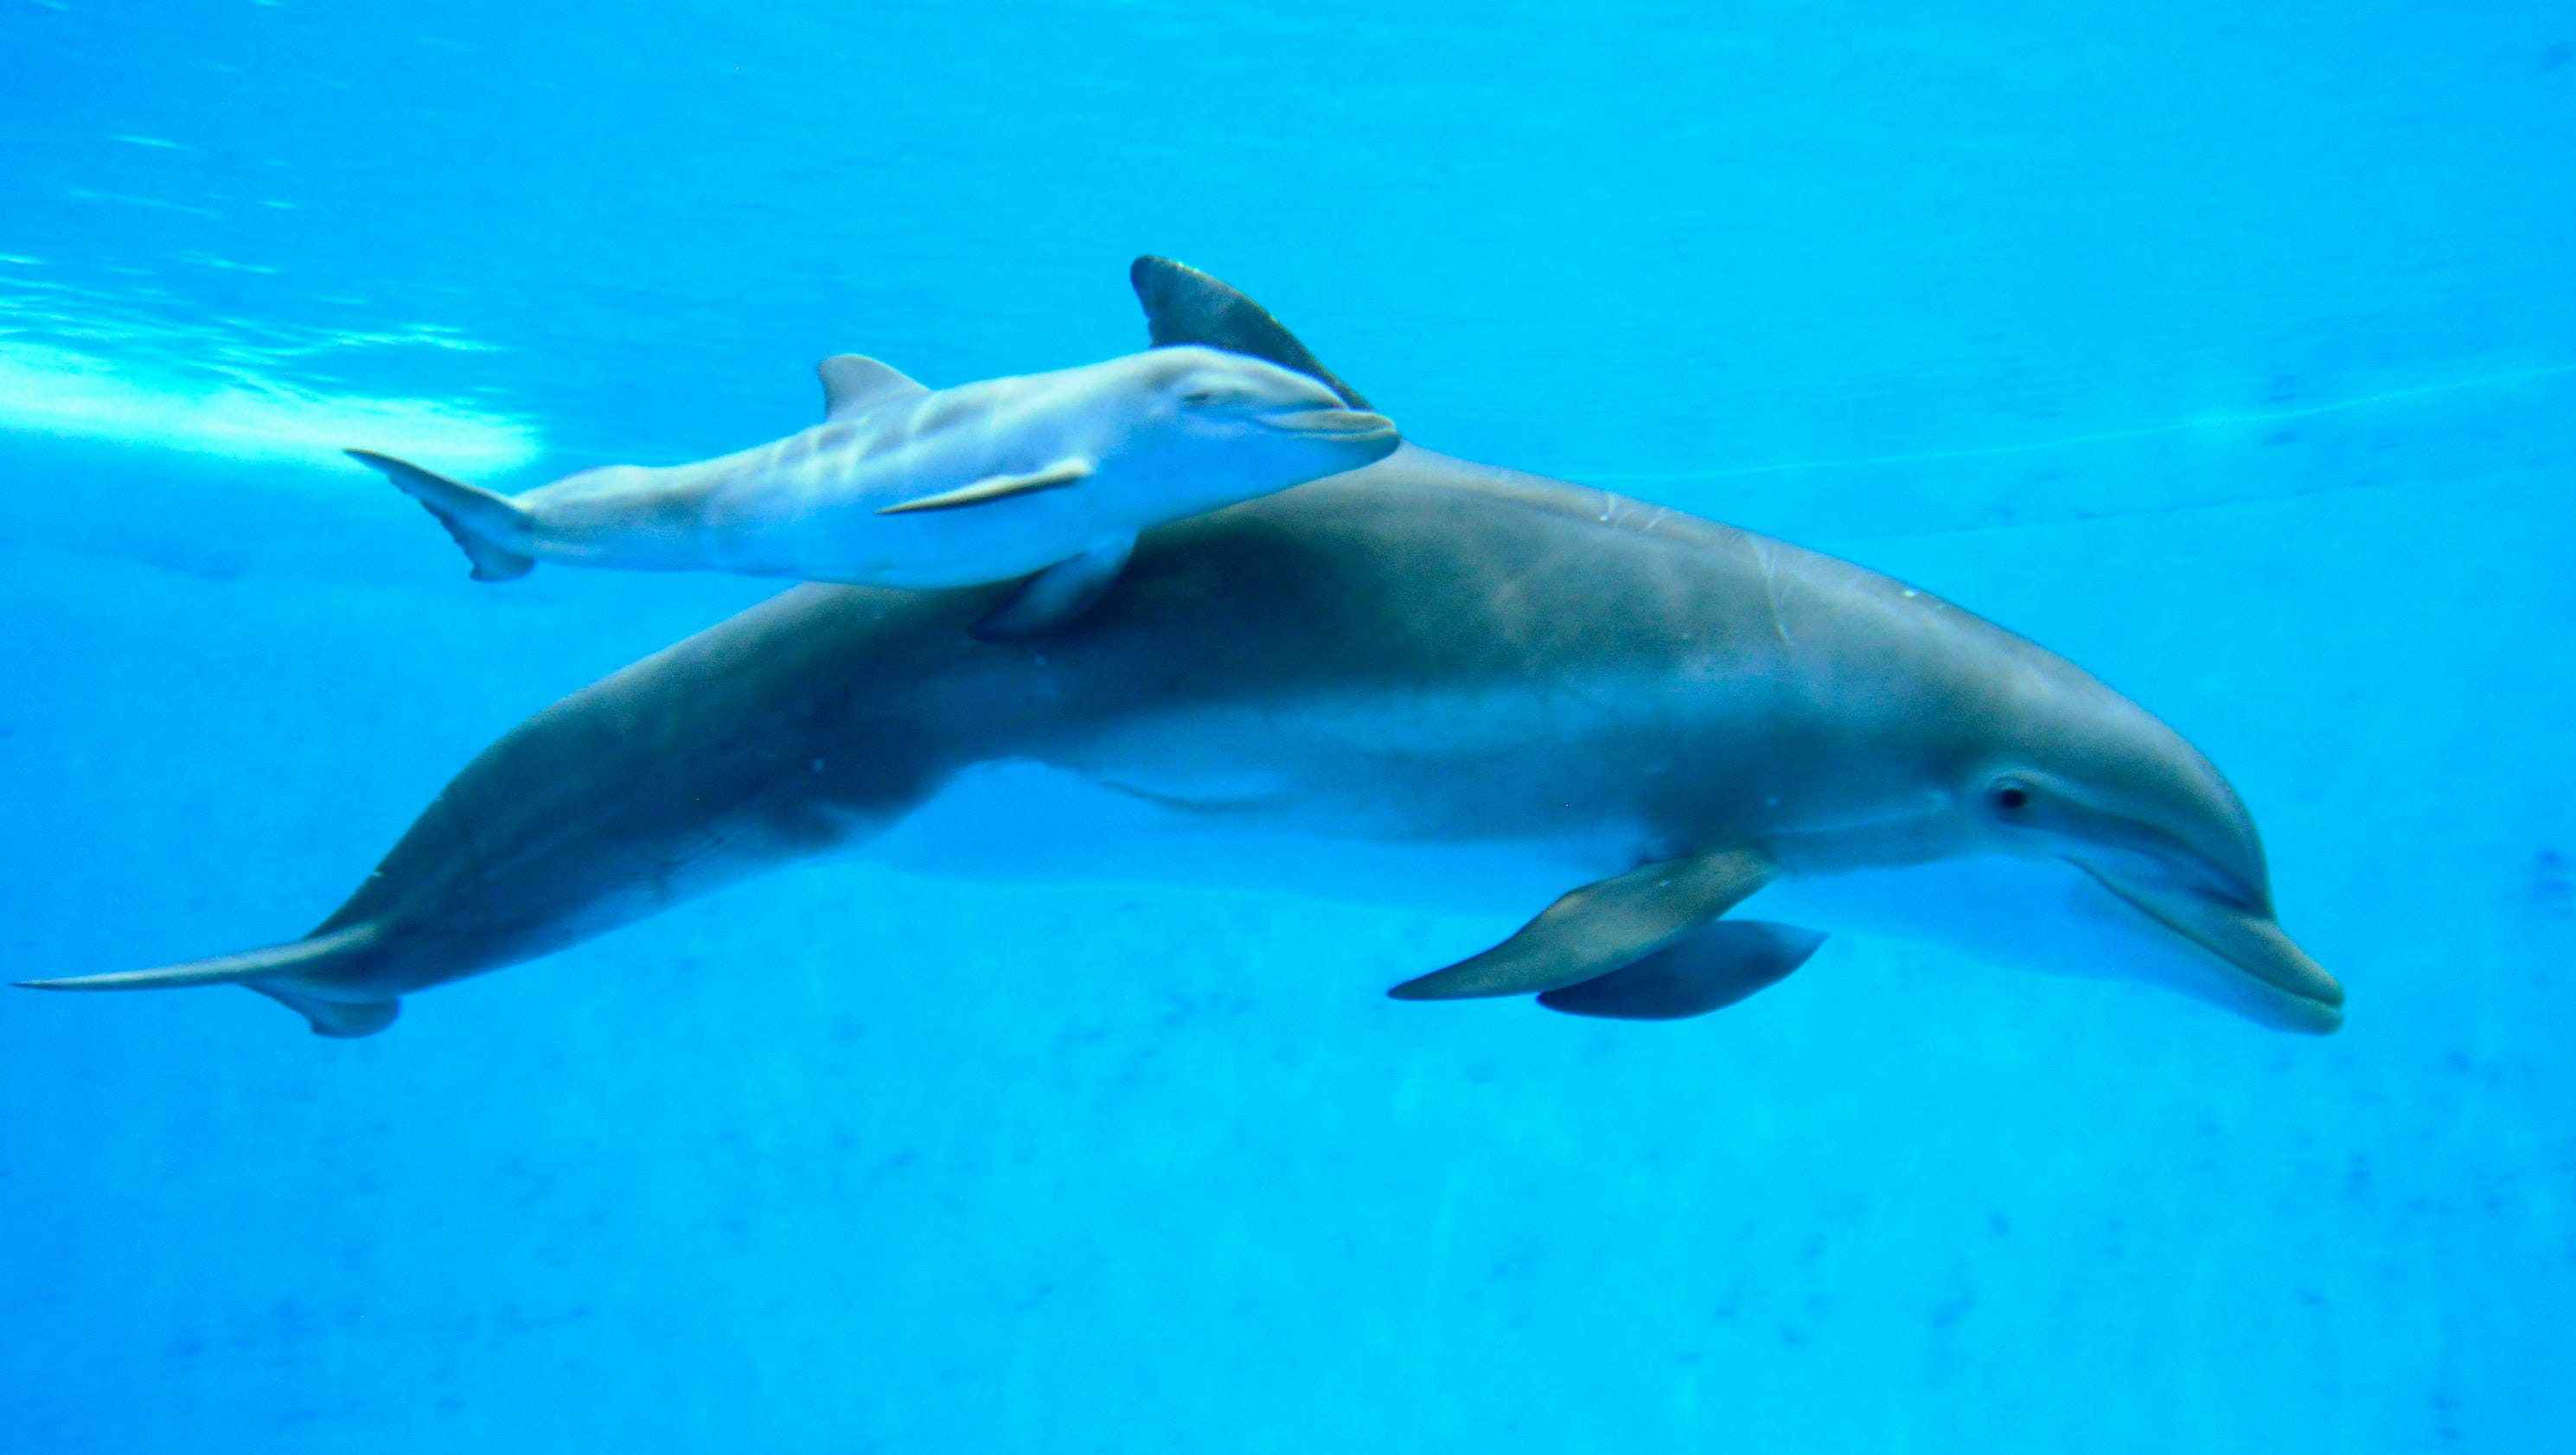 Controversy: Will Tourists Soon Swim With Captive Dolphins